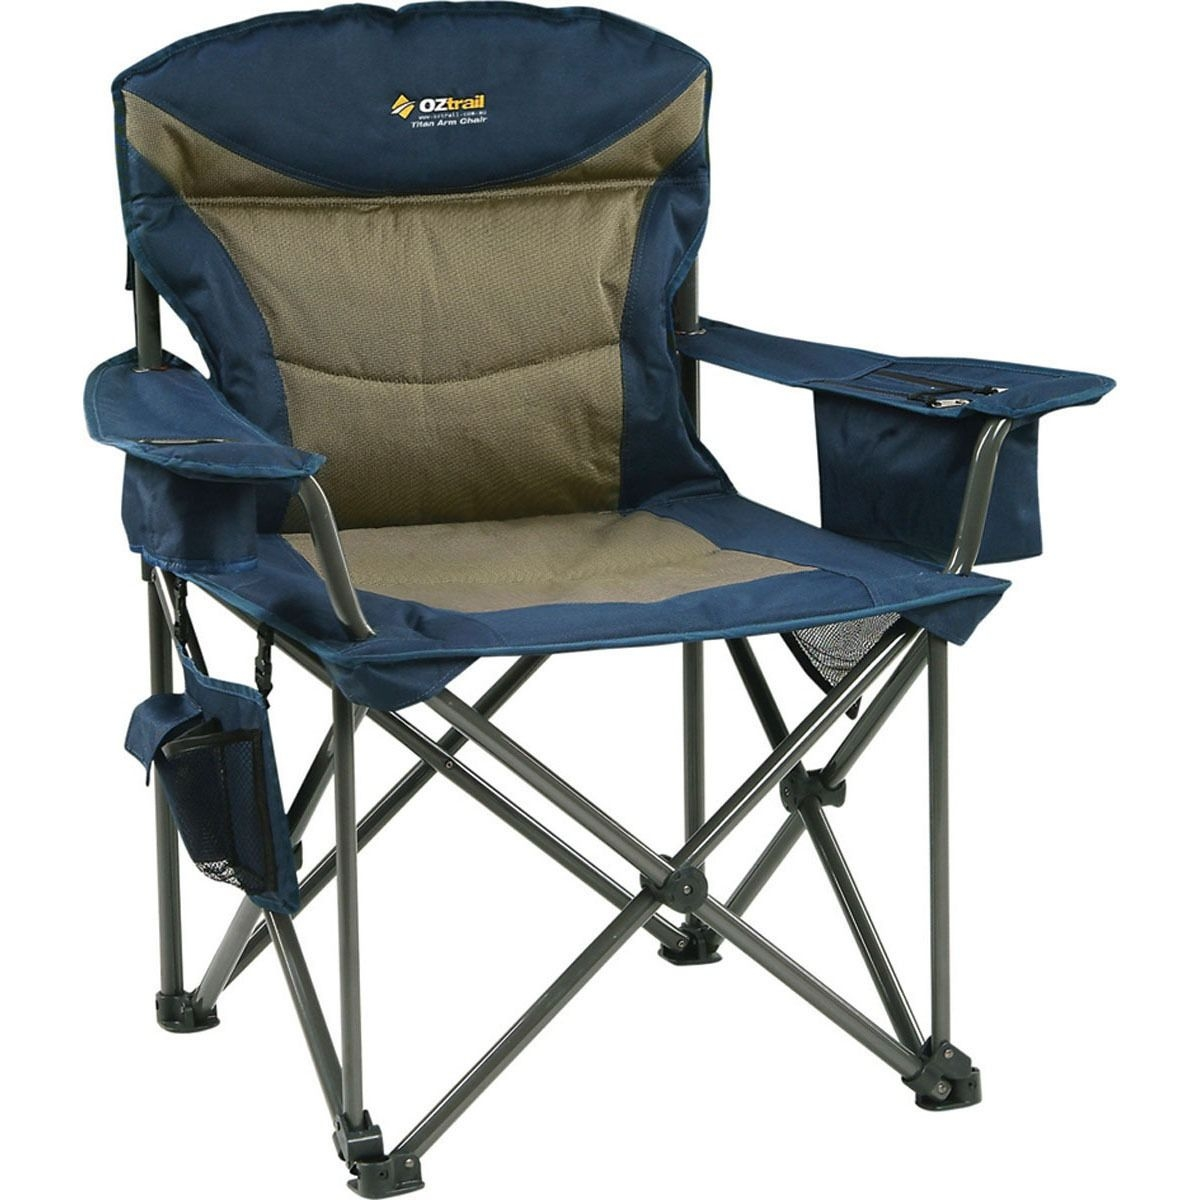 Delightful Folding Armrest Chair With Footrest